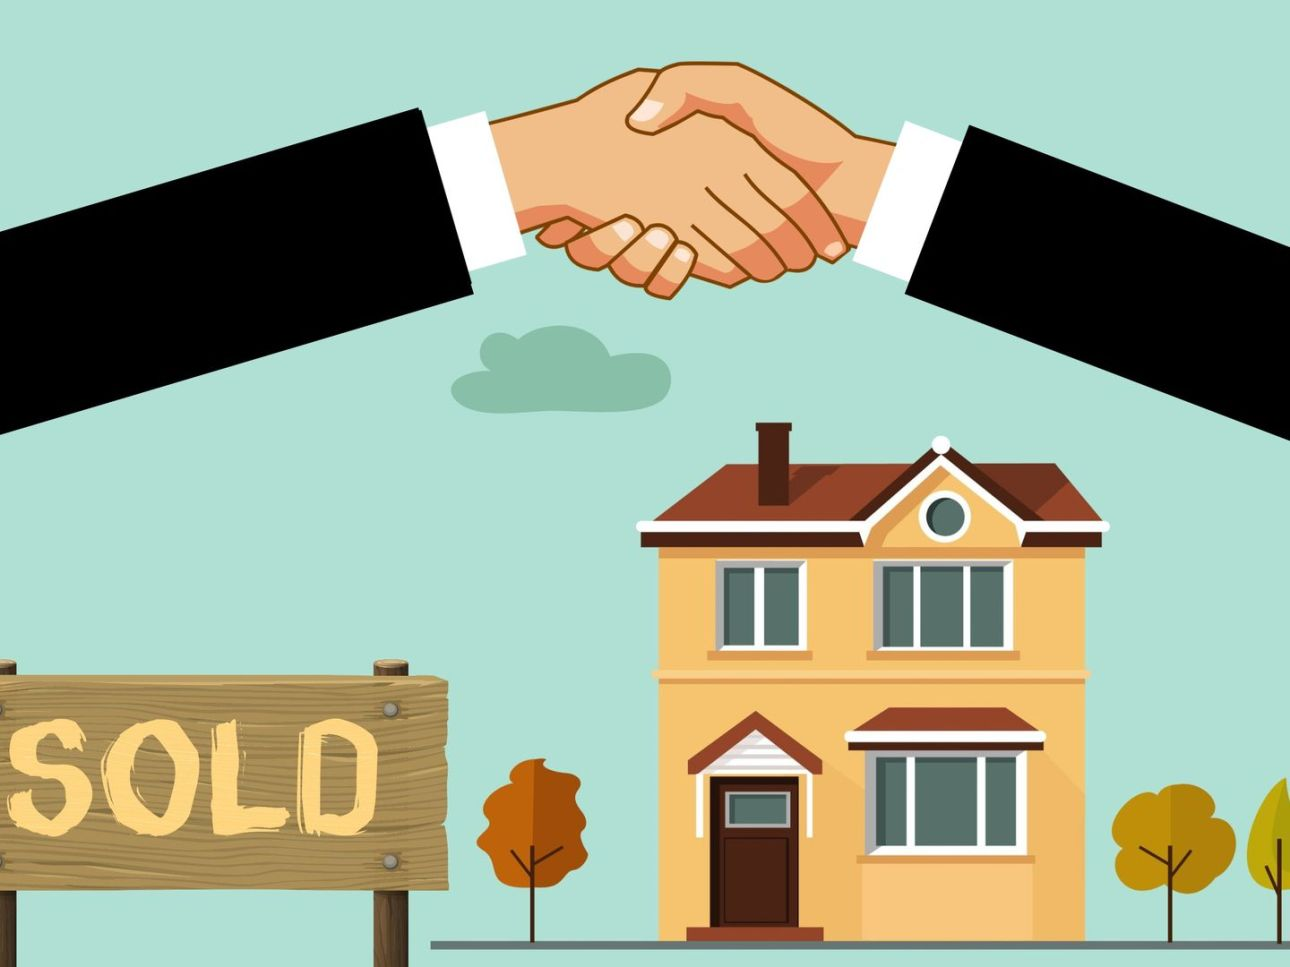 Getting Into Real Estate: 5 Steps to Becoming an Agent